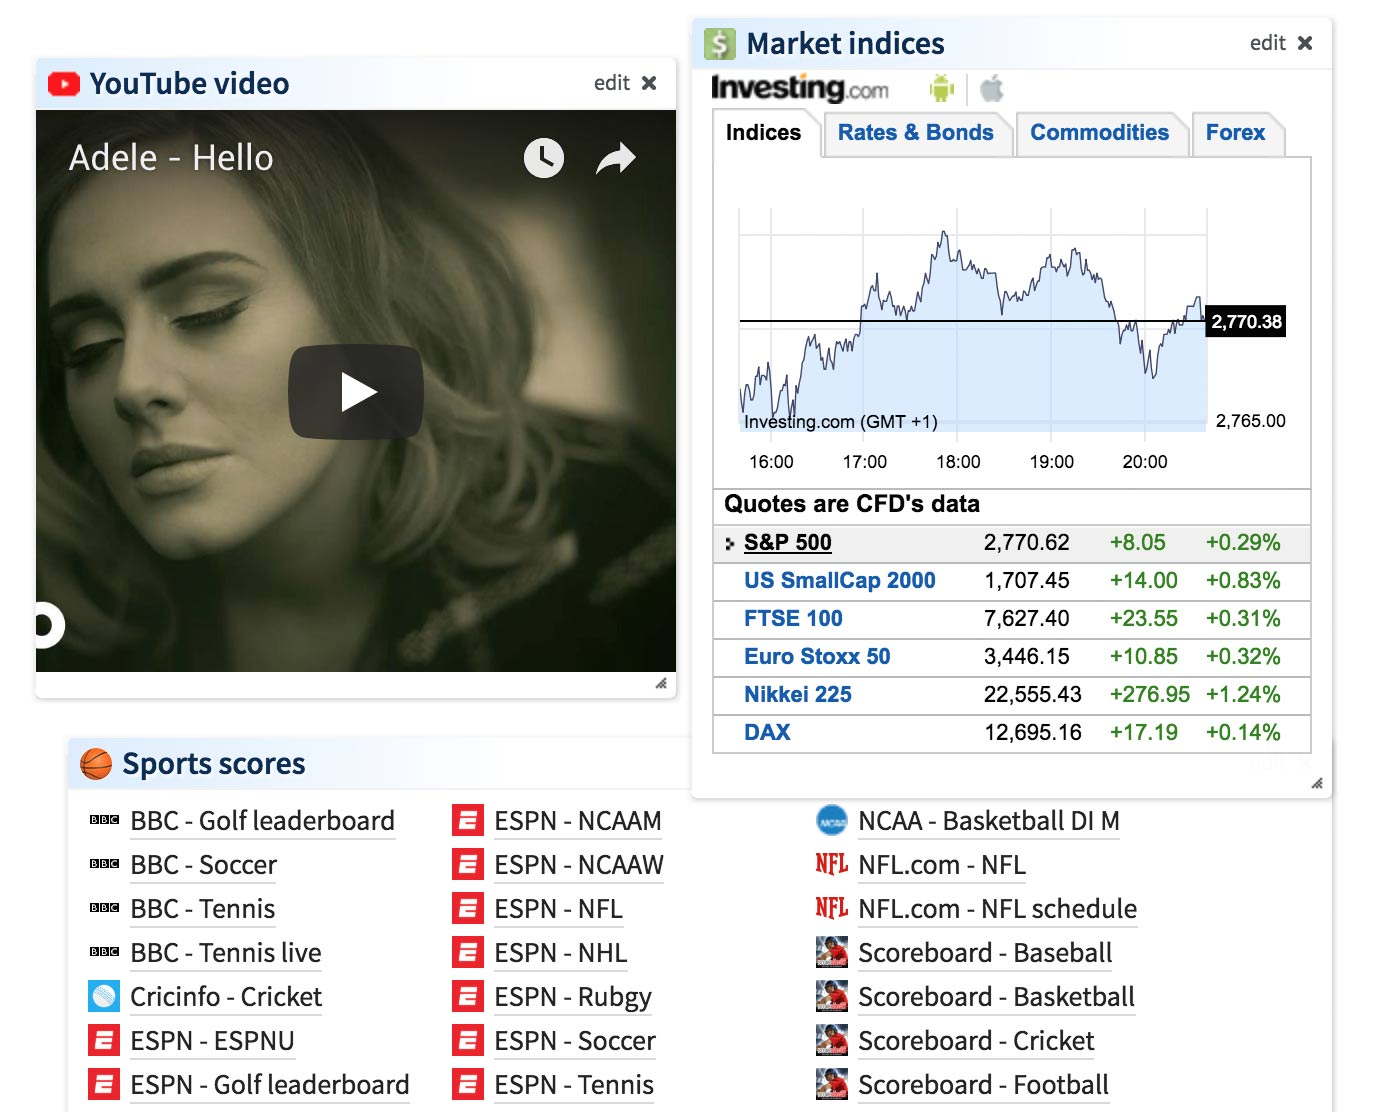 Protopage News Blog » Blog Archive » New YouTube, Market Indices and